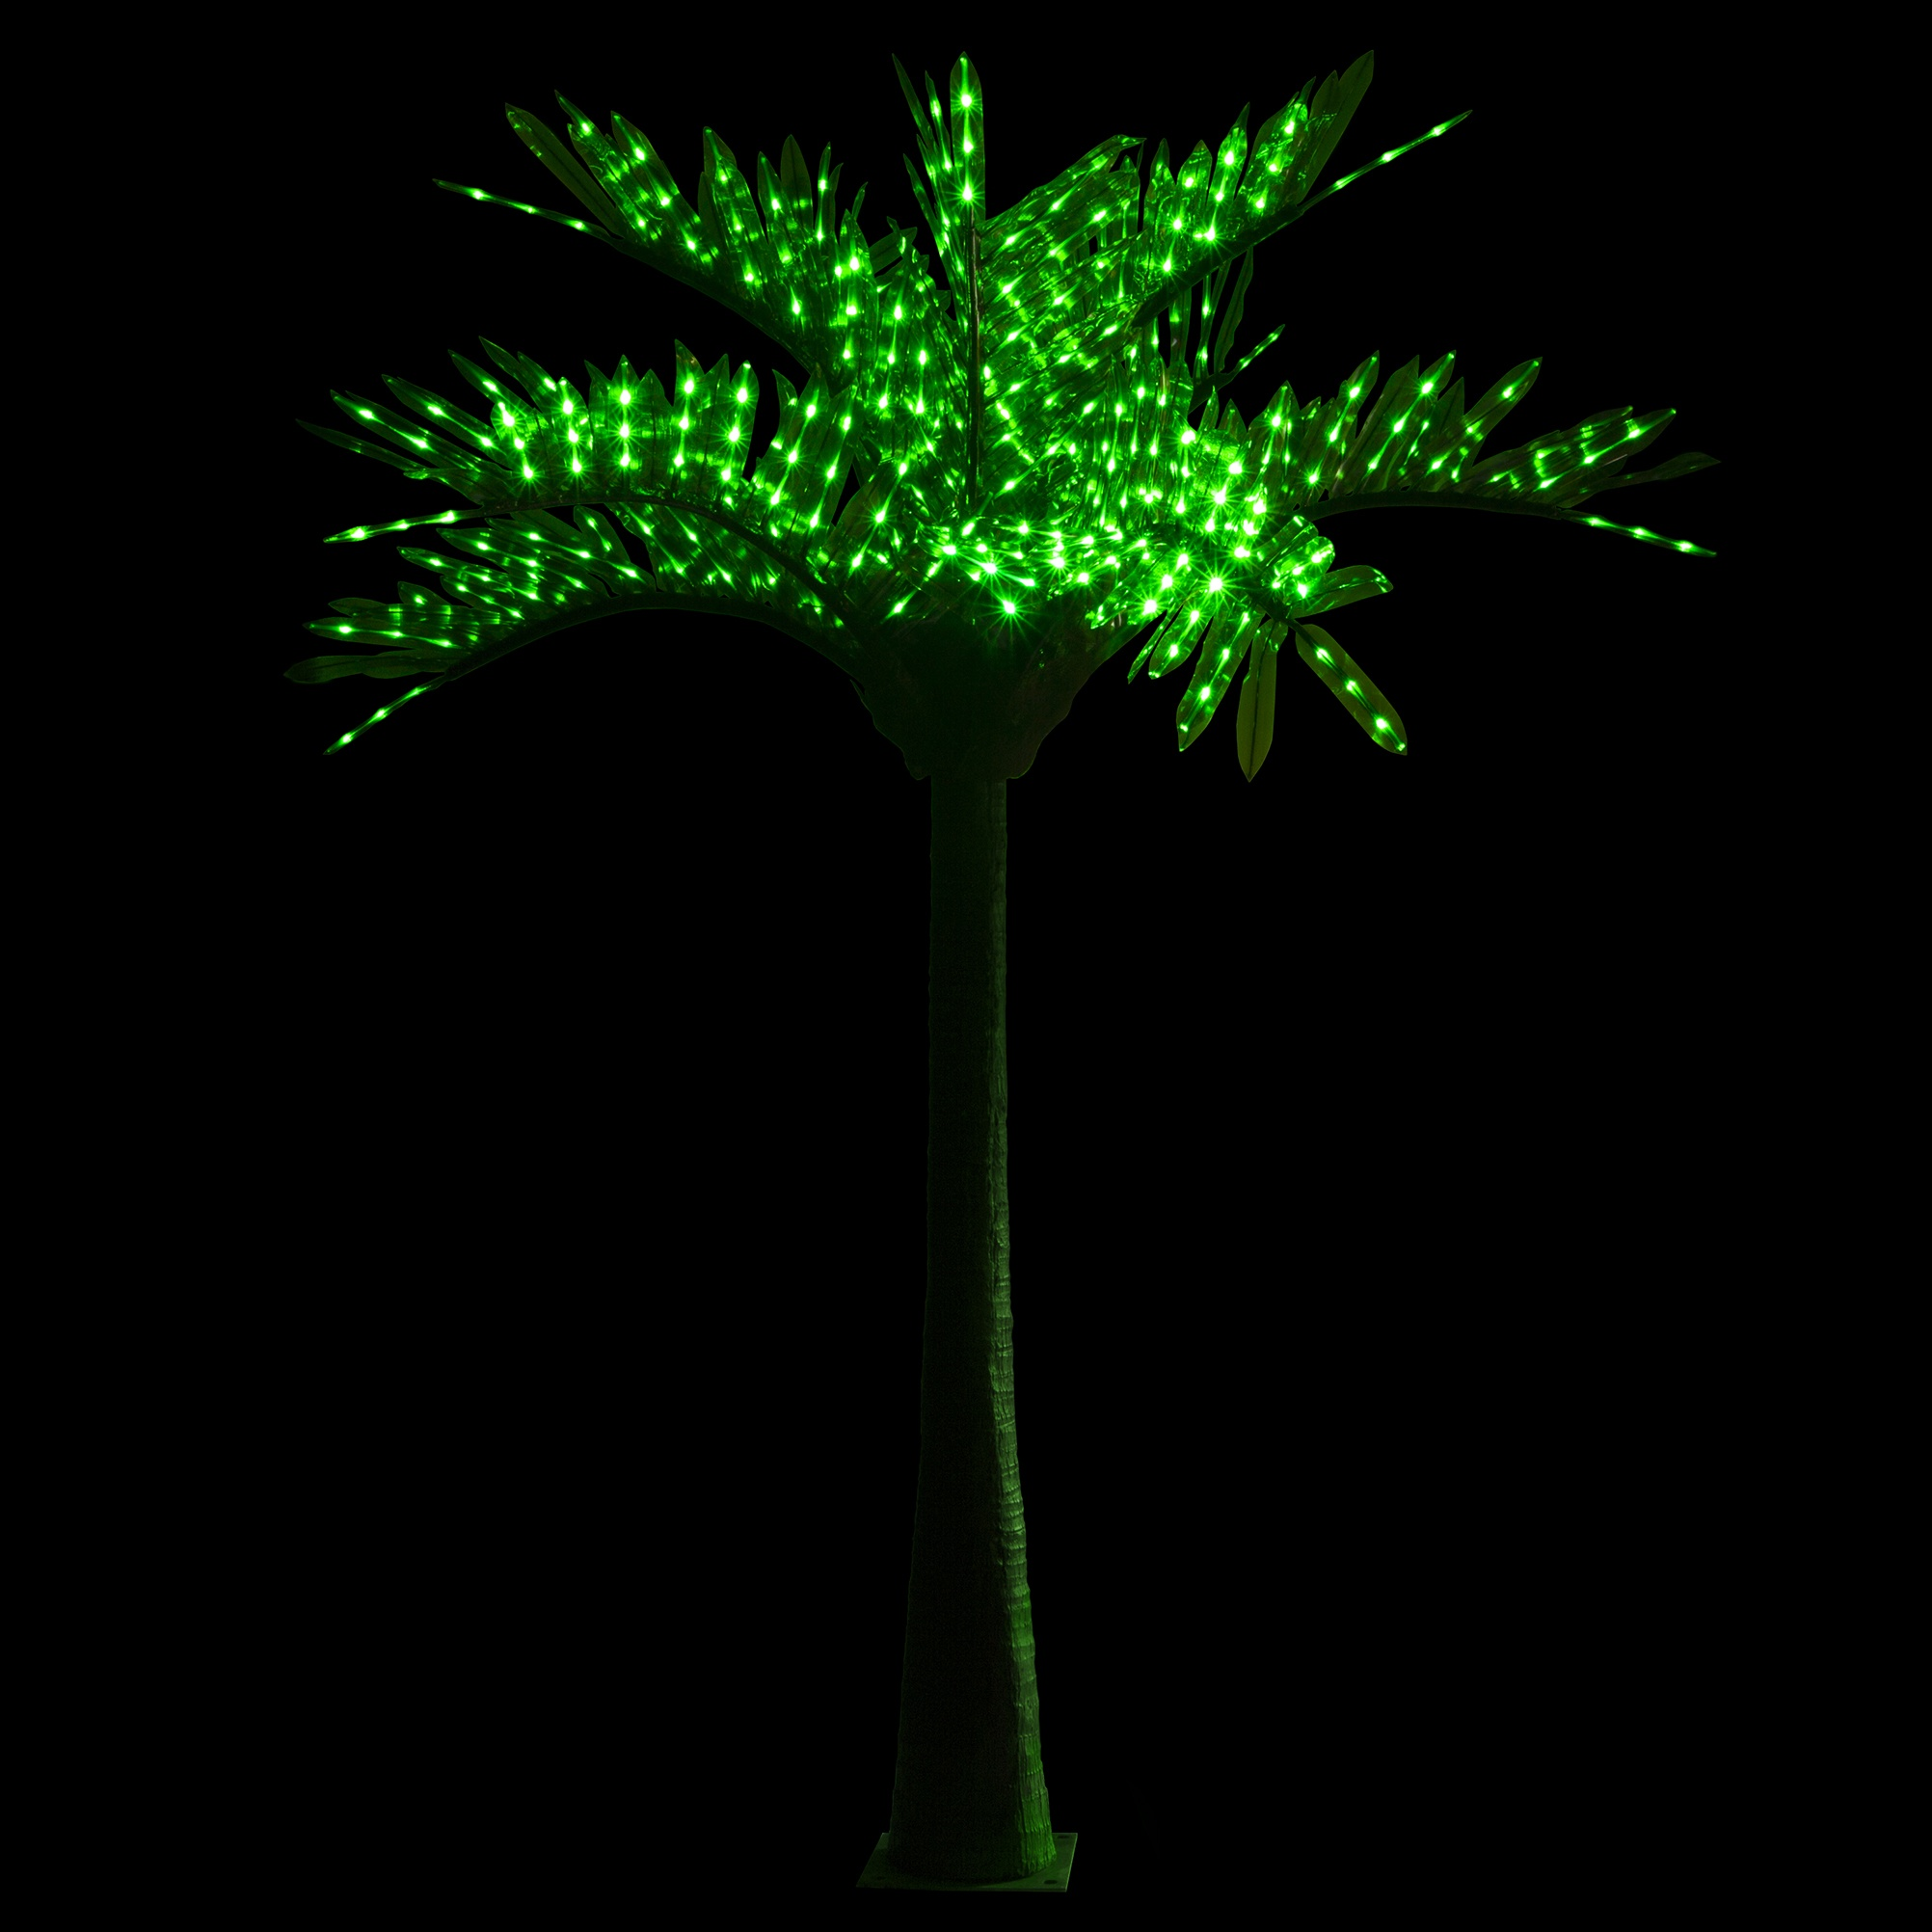 10u0027 LED Palm Tree - Natural Green & Lighted Palm Trees - 10u0027 LED Palm Tree - Natural Green